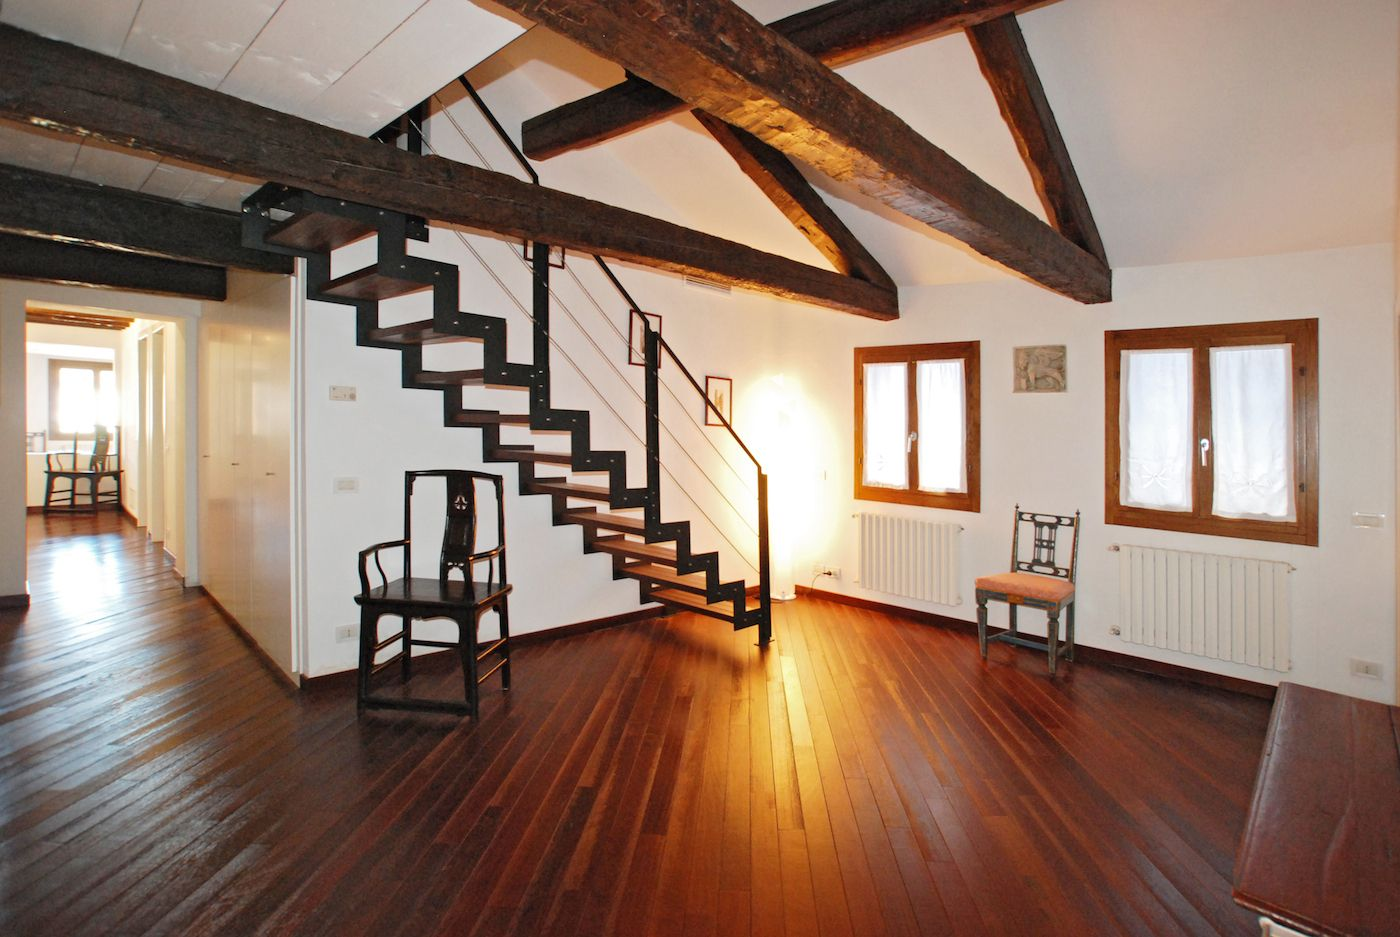 spacious entrance with staircase to the attic